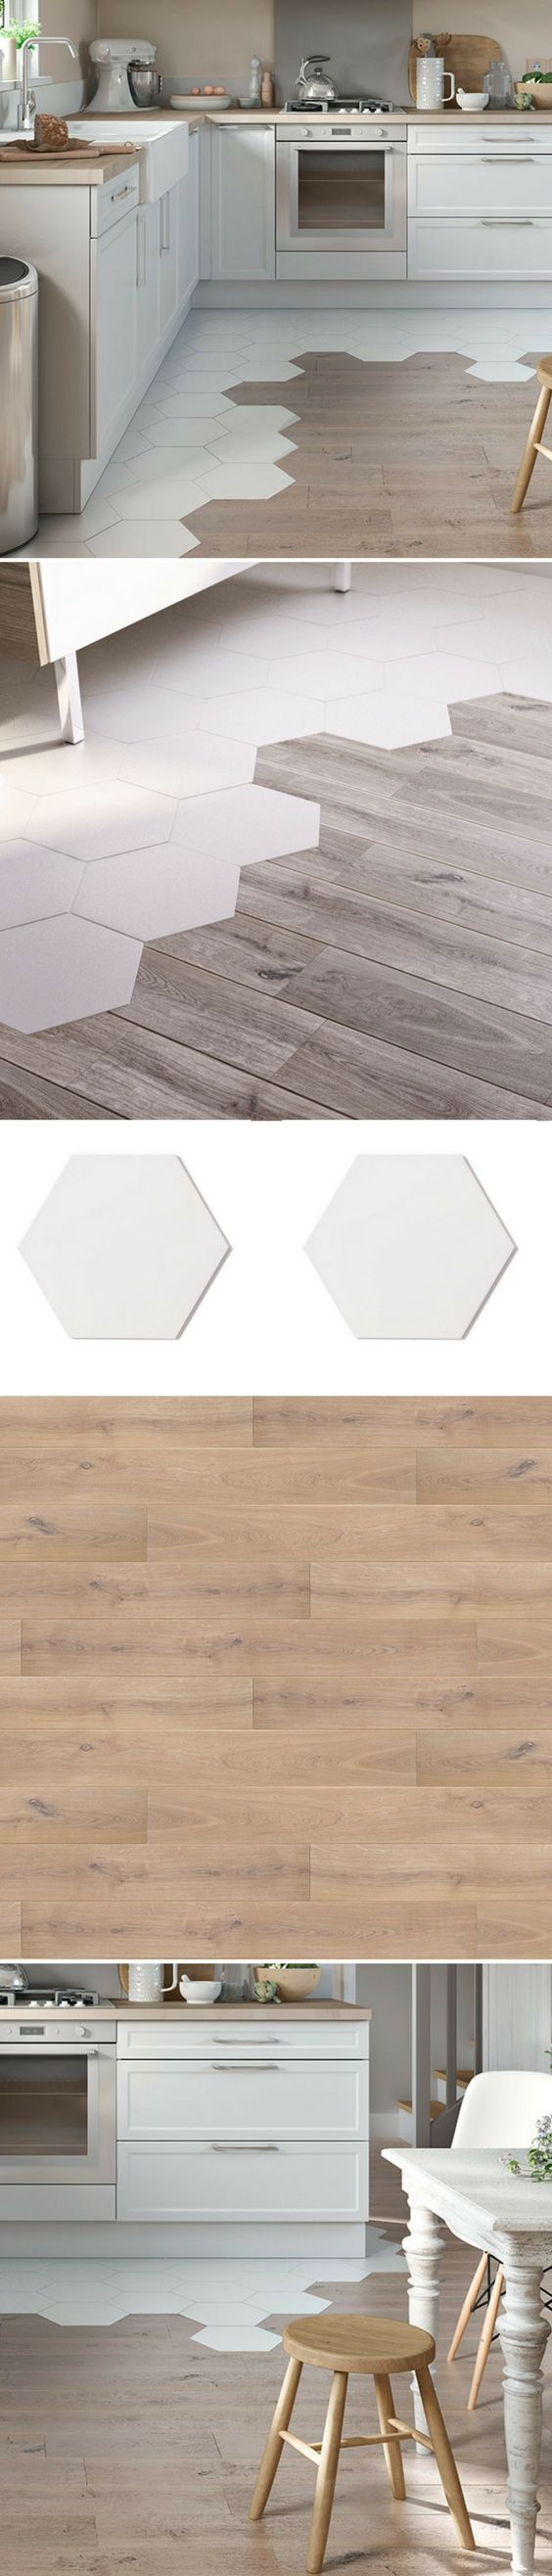 the 25 best transition flooring ideas on pinterest hexagon tiles parquet tiles and wooden. Black Bedroom Furniture Sets. Home Design Ideas